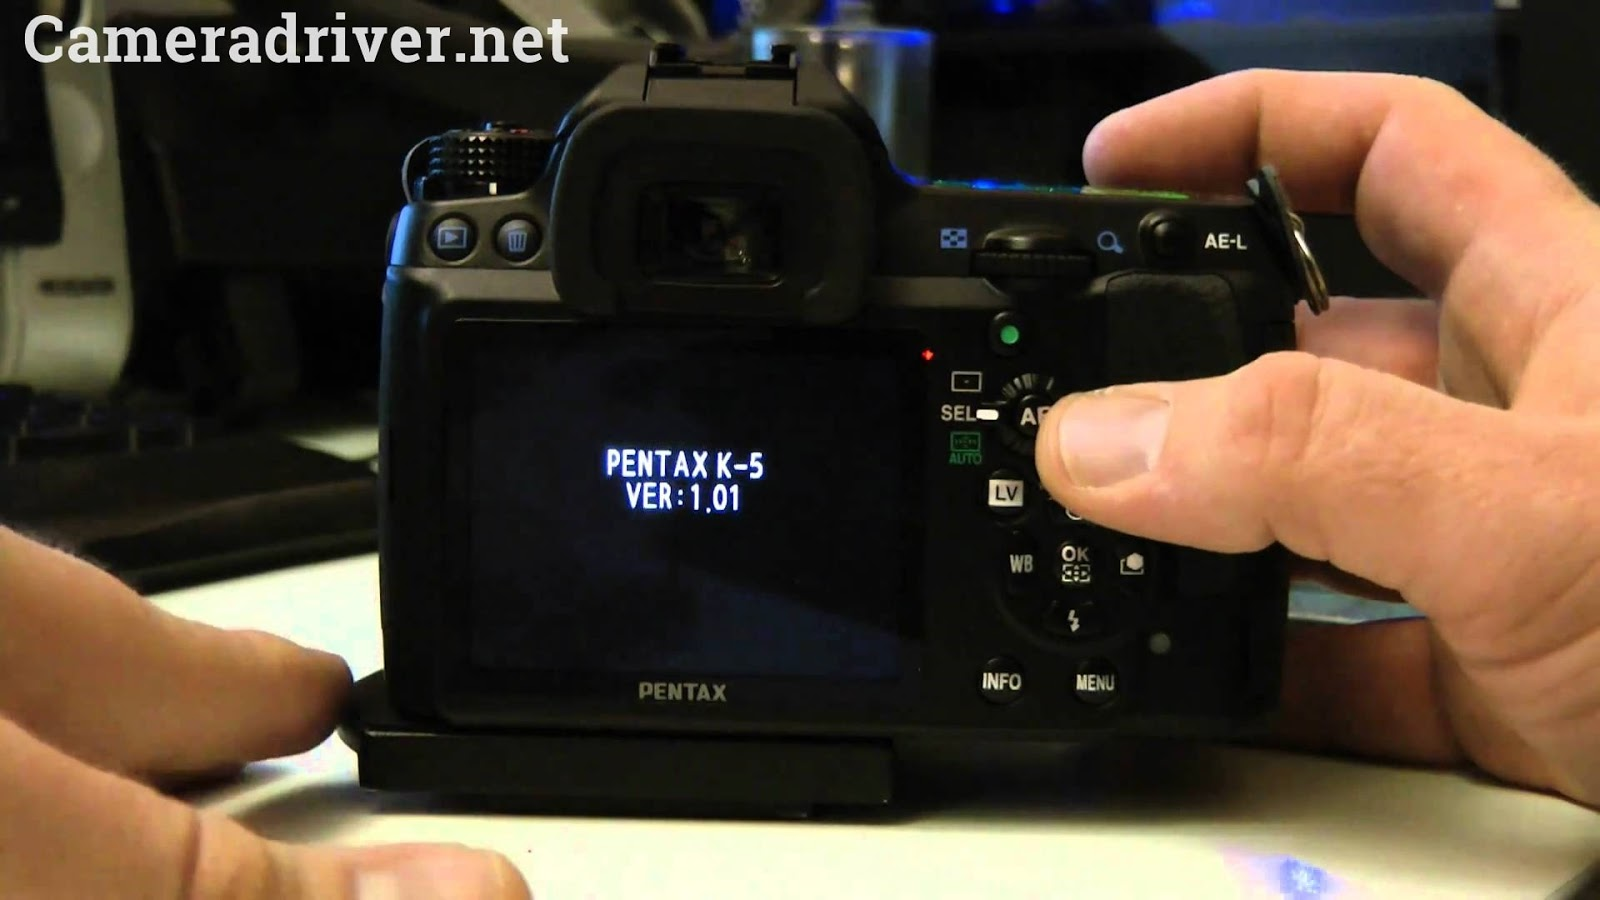 Take a Look More about Software and Firmware Download of Pentax K-5